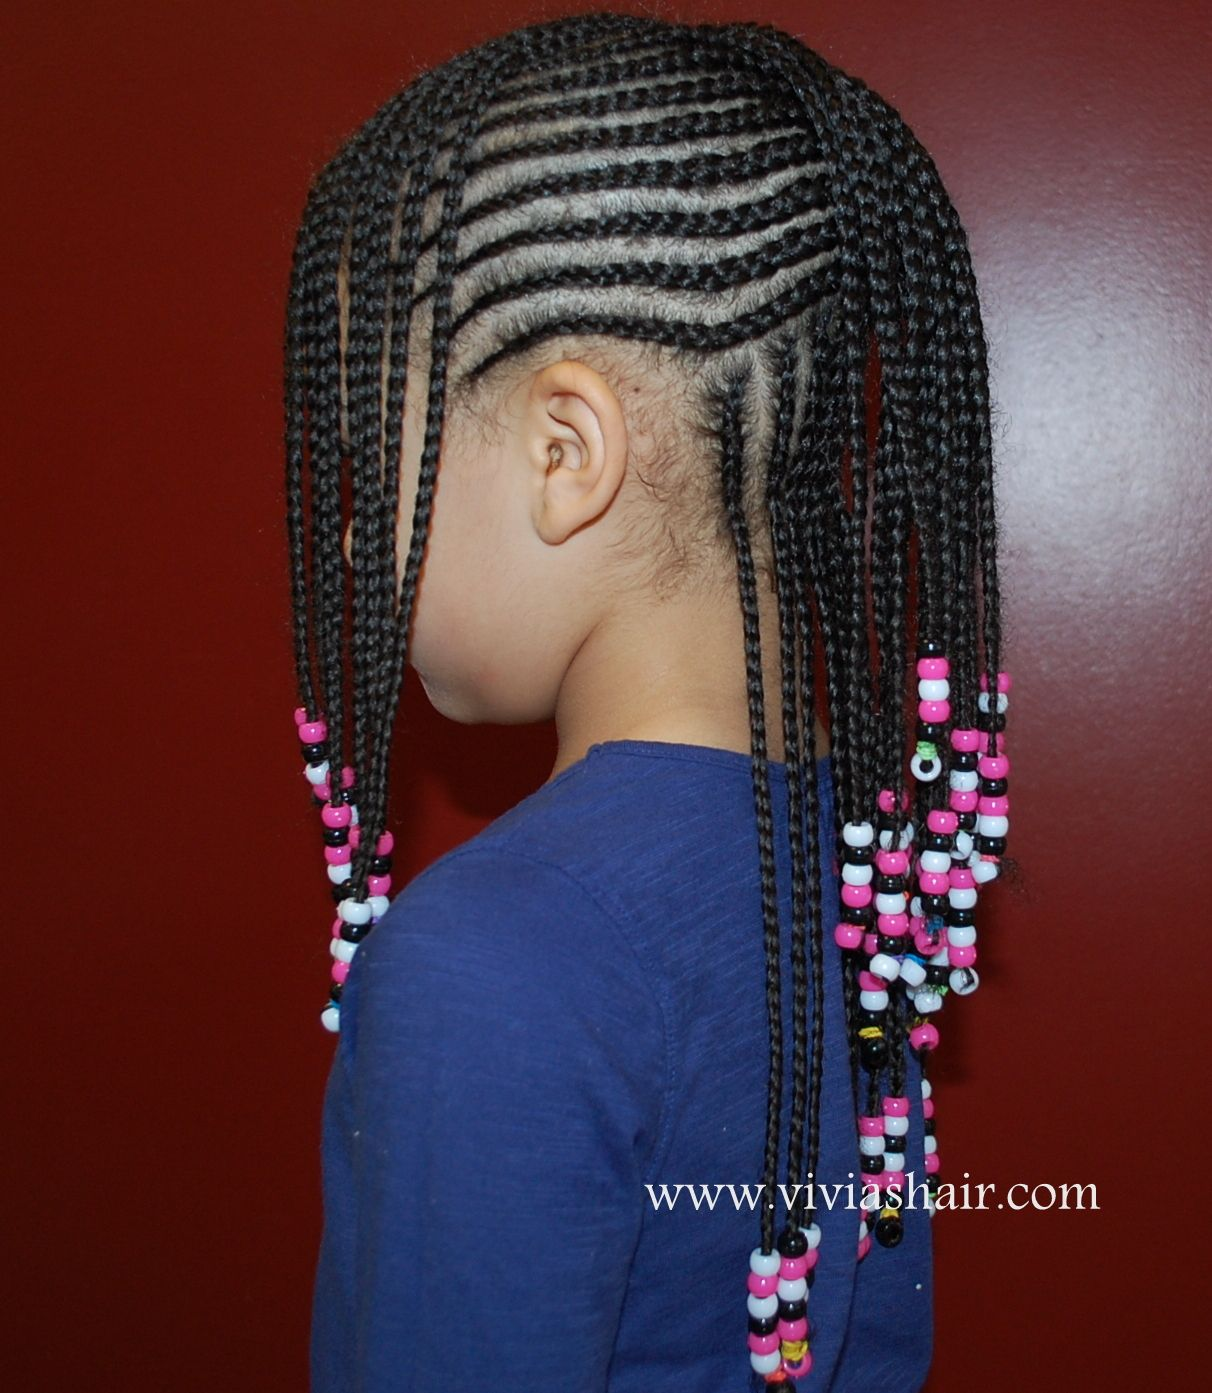 Cute hairstyles for kids hairstyleforblackwomen.net 82